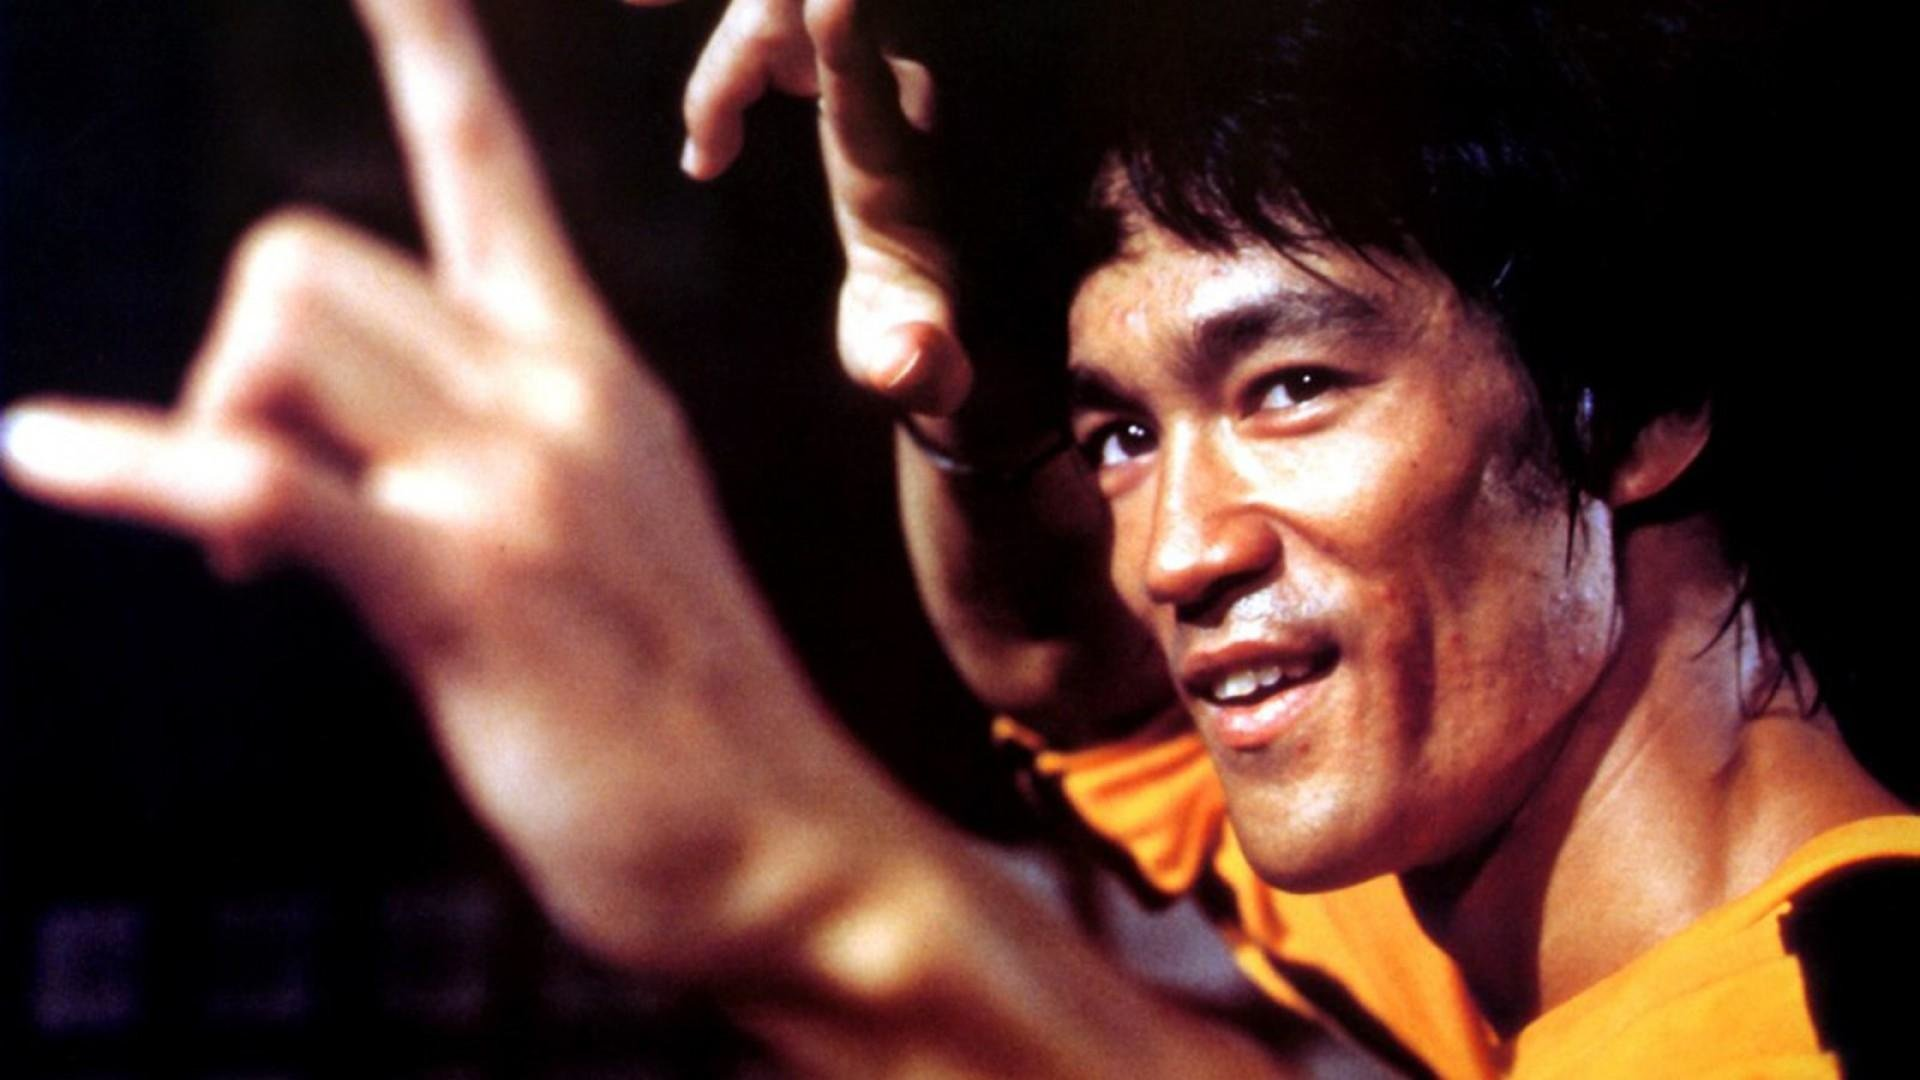 Download Full Hd 1080p Bruce Lee Pc Background Id 1080p Bruce Lee Wallpaper Hd 1920x1080 Wallpaper Teahub Io